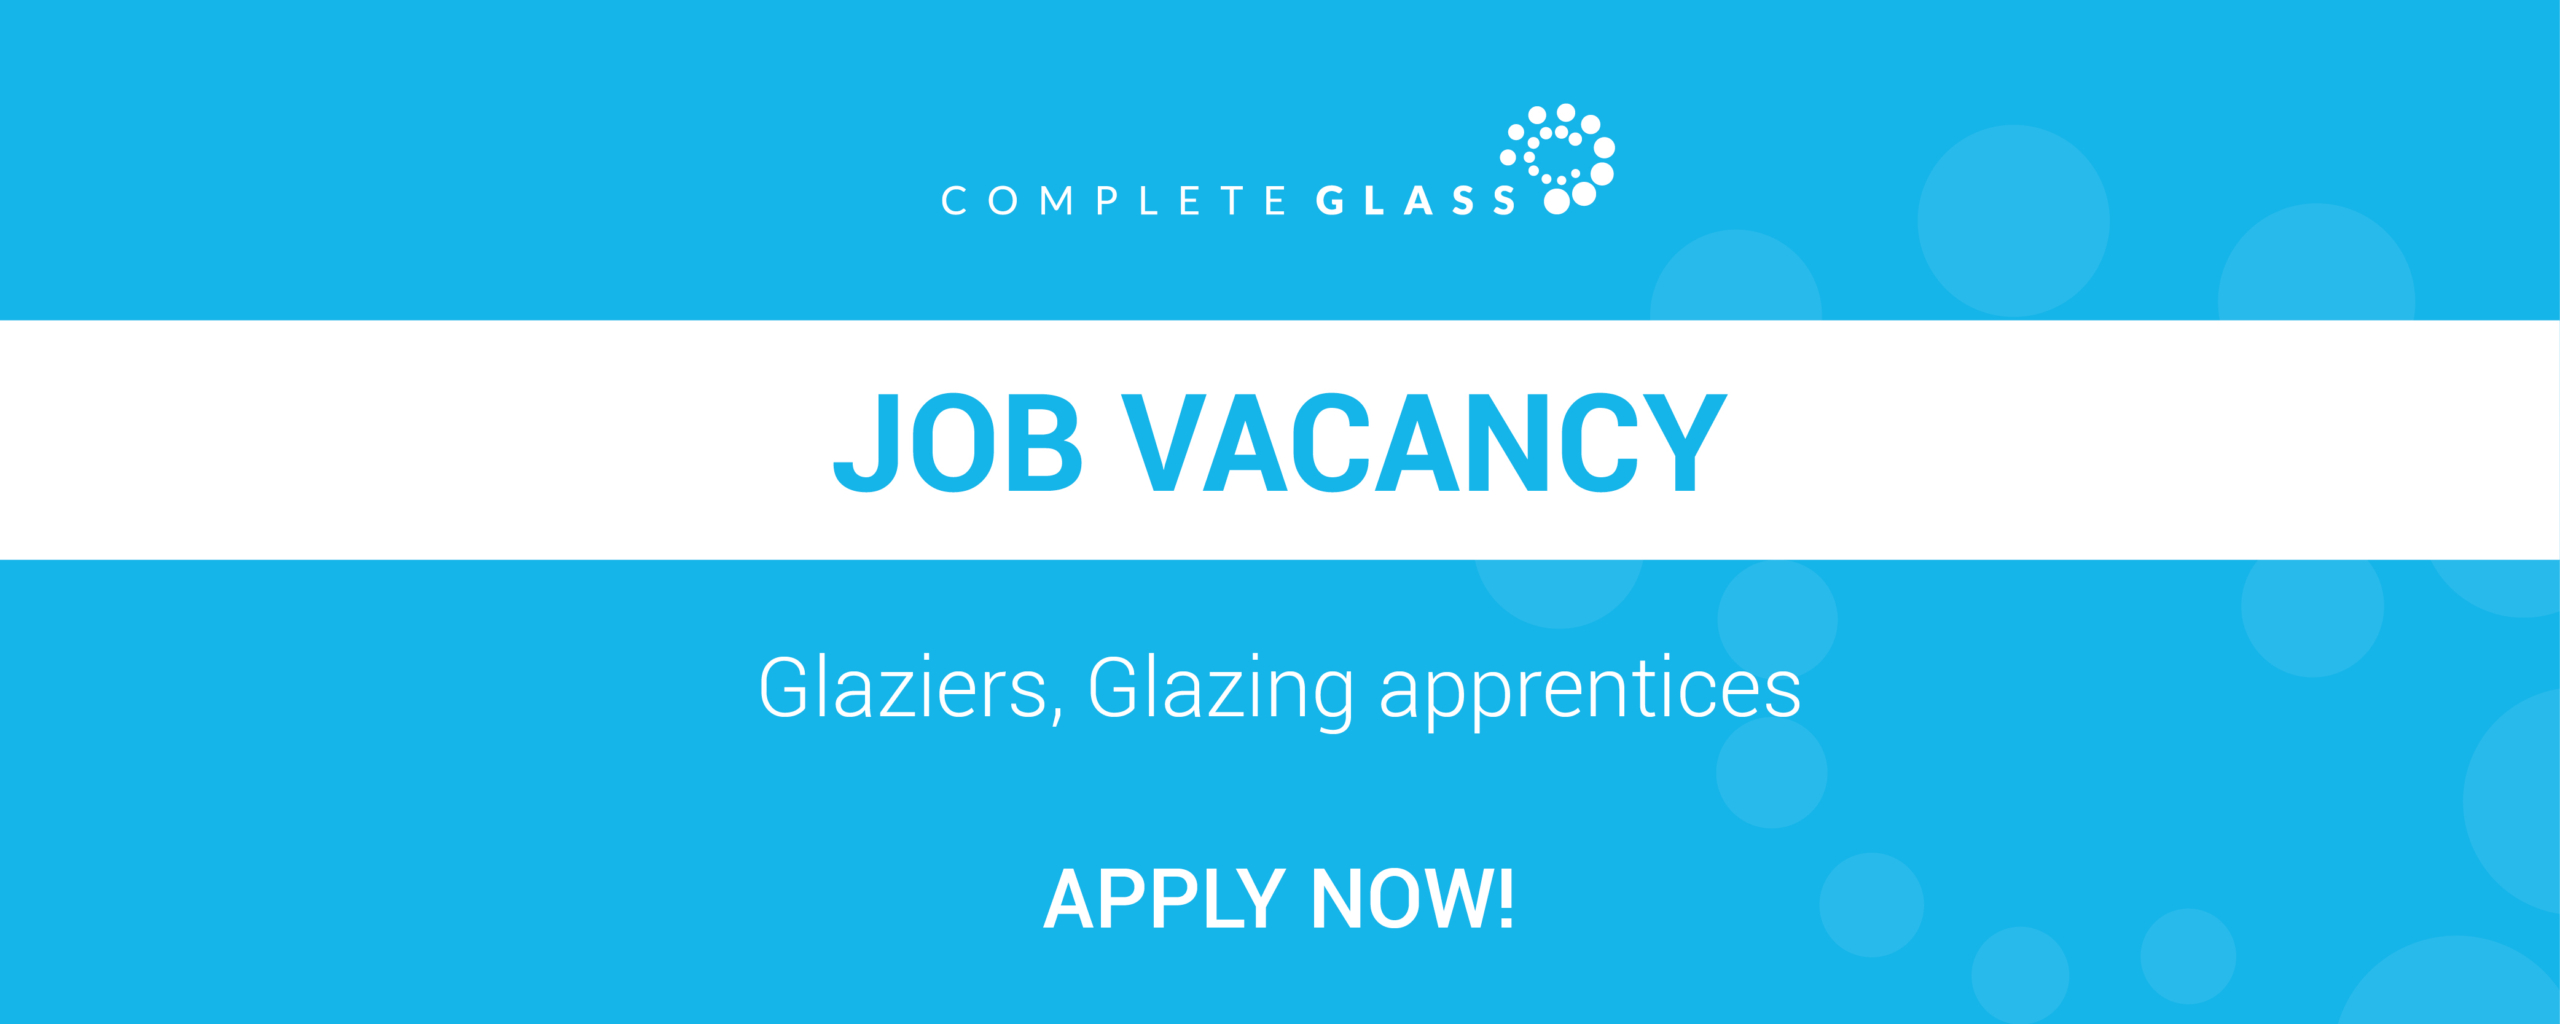 sydney-glazier-job-vacancy